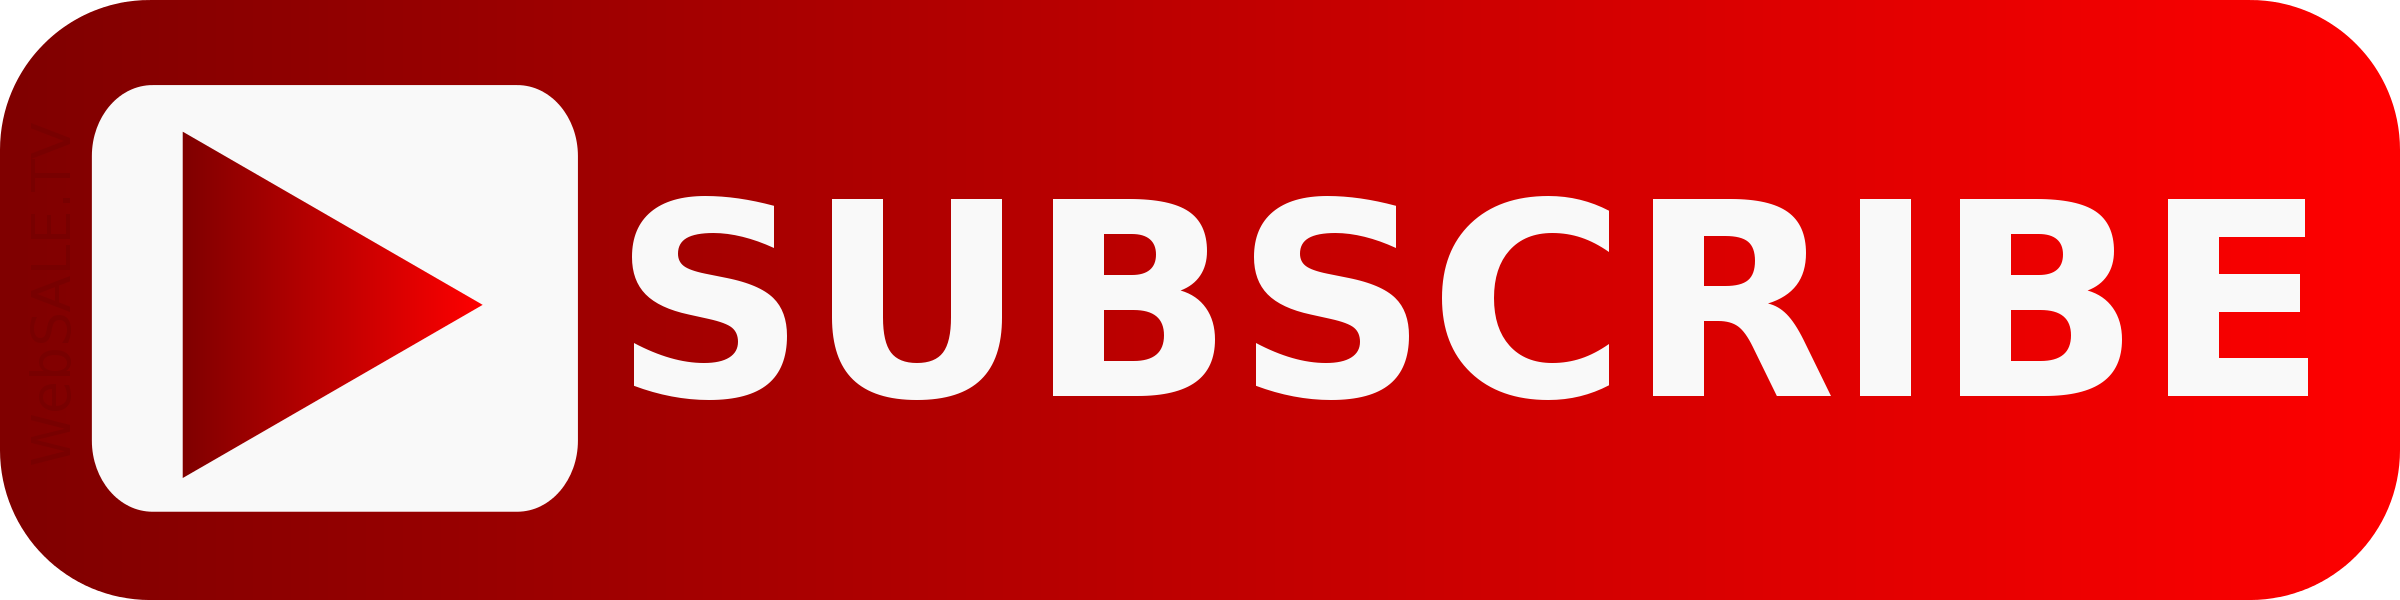 Youtube Subscribe Png - Subscribe PNG Transparent Subscribe.PNG Images. | PlusPNG